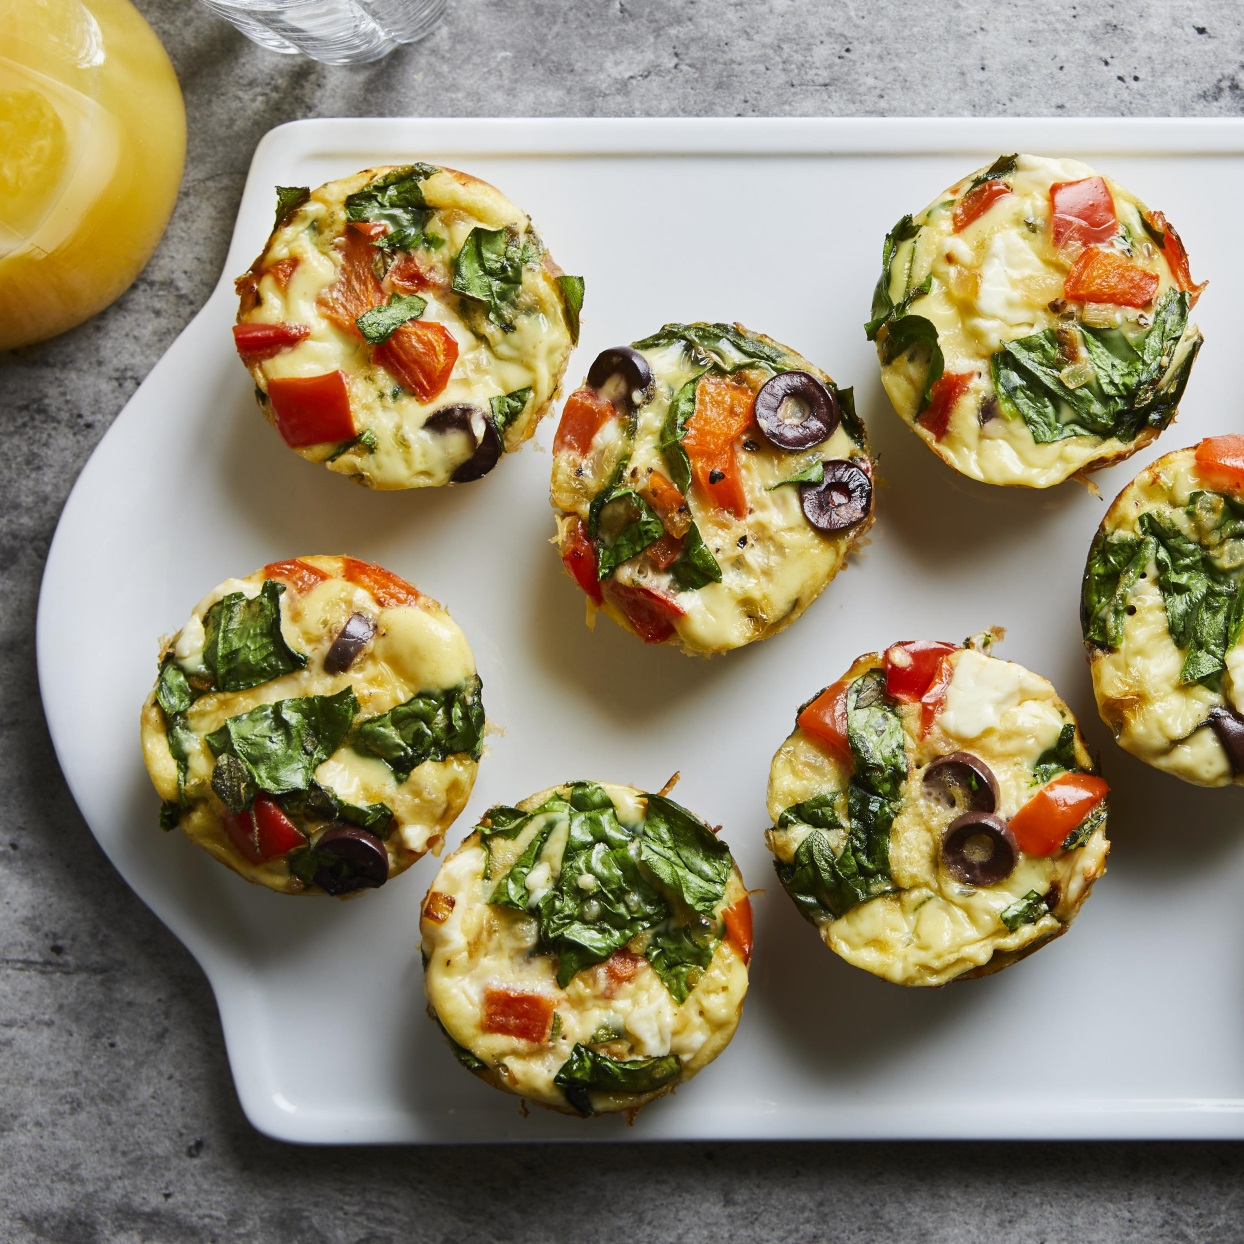 22 Make-Ahead Low-Carb Breakfasts for Busy Mornings